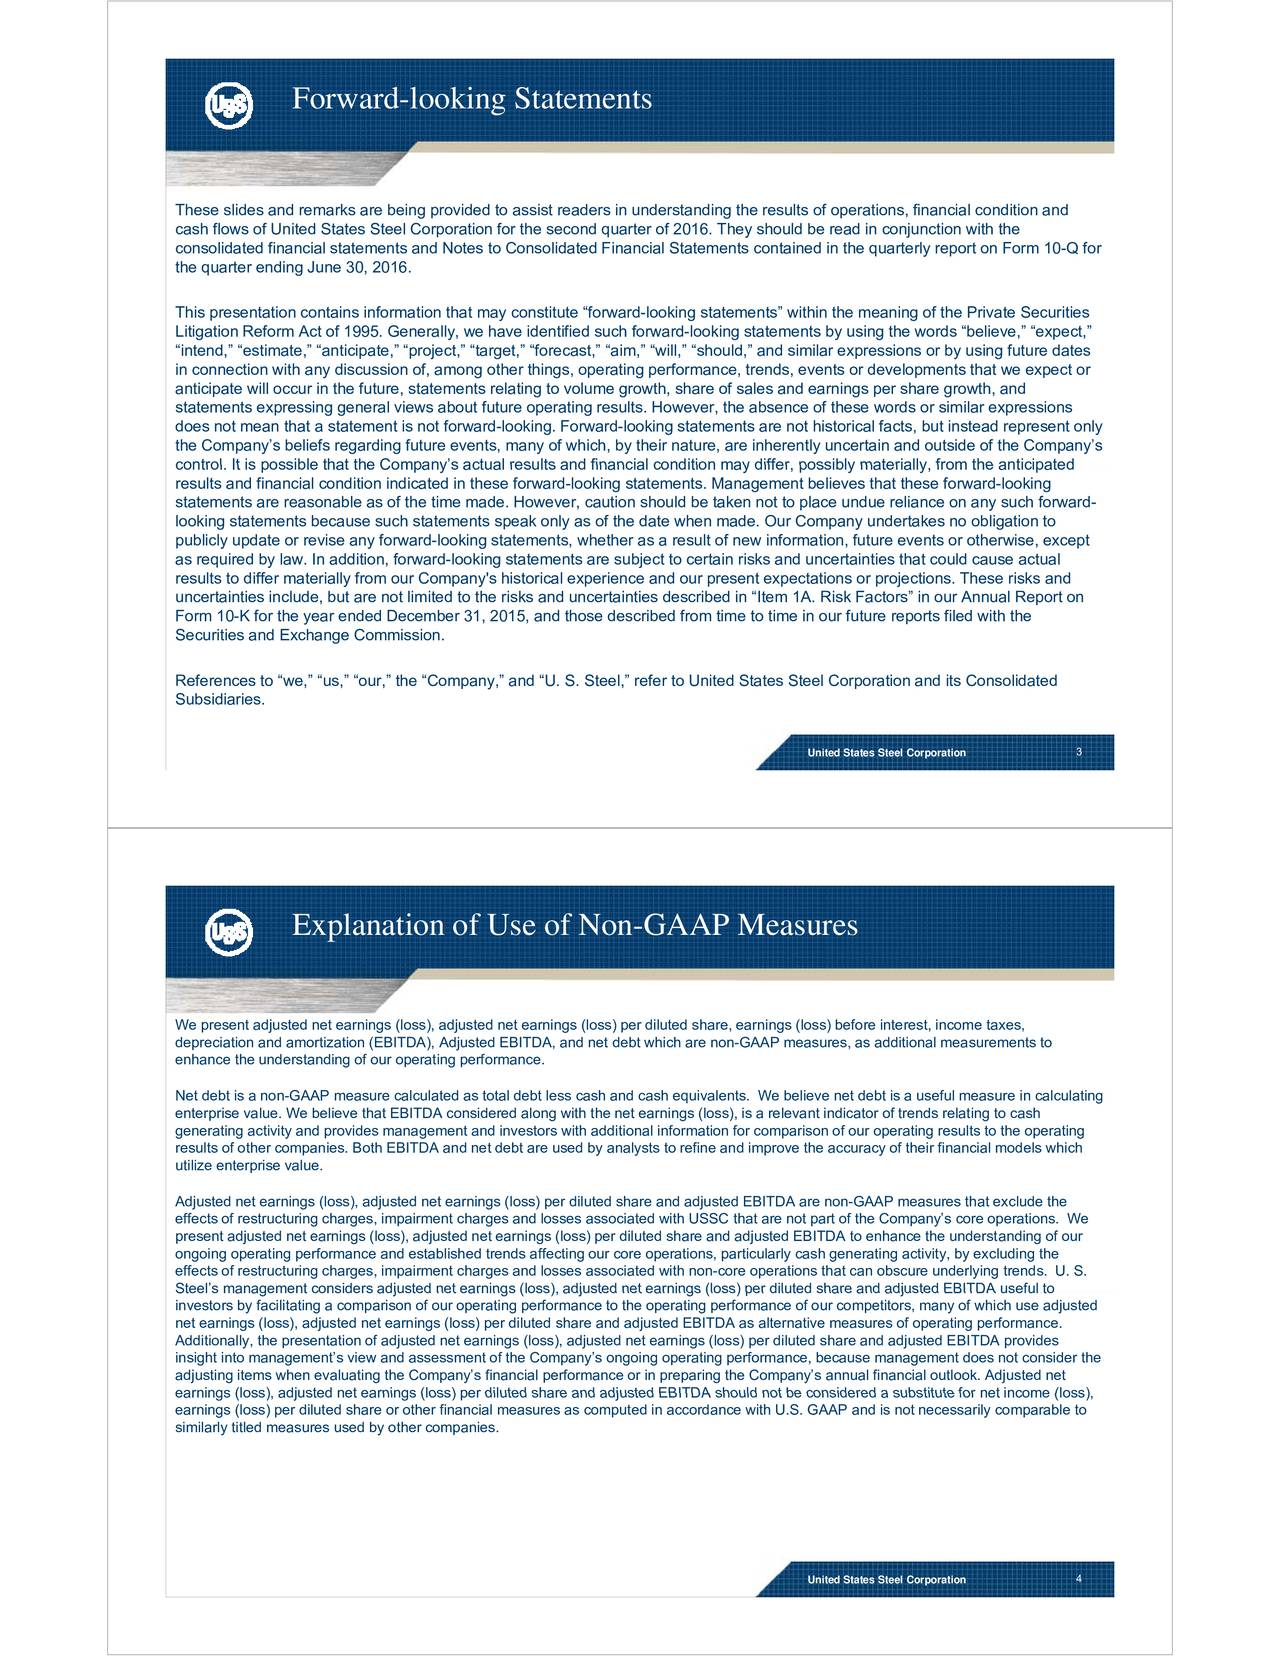 These slides and remarks are being provided to assist readers in understanding the results of operations, financial condition and cash flows of United States Steel Corporation for the second quarter of 2016. They should be read in conjunction with the consolidated financial statements and Notes to Consolidated Financial Statements contained in the quarterly report on Form 10-Q for the quartter endiing June 330, 20166. This presentation contains information that may constitute forward-looking statements within the meaning of the Private Securities Litigation Reform Act of 1995. Generally, we have identified such forward-looking statements by using the words believe, expect, intend, estimate, anticipate, project, target, forecast, aim, will, should, and similar expressions or by using future dates i ffi hiih d dhl dh iiiniconnection with any discussion of, among other things, operating performance, trends, events or developments that we expect or anticipate will occur in the future, statements relating to volume growth, share of sales and earnings per share growth, and statements expressing general views about future operating results. However, the absence of these words or similar expressions does not mean that a statement is not forward-looking. Forward-looking statements are not historical facts, but instead represent only the Companys beliefs regarding future events, many of which, by their nature, are inherently uncertain and outside of the Companys coonttoll. Ispoossible thatthee Commppannysacctuallessuls annd fnaanciallcondiiton maay diierr,posssiby maaterraly, fomm the aantcipatedd results and financial condition indicated in these forward-looking statements. Management believes that these forward-looking statements are reasonable as of the time made. However, caution should be taken not to place undue reliance on any such forward- looking statements because such statements speak only as of the date when made. Our Company undertakes no obligation to publicly u